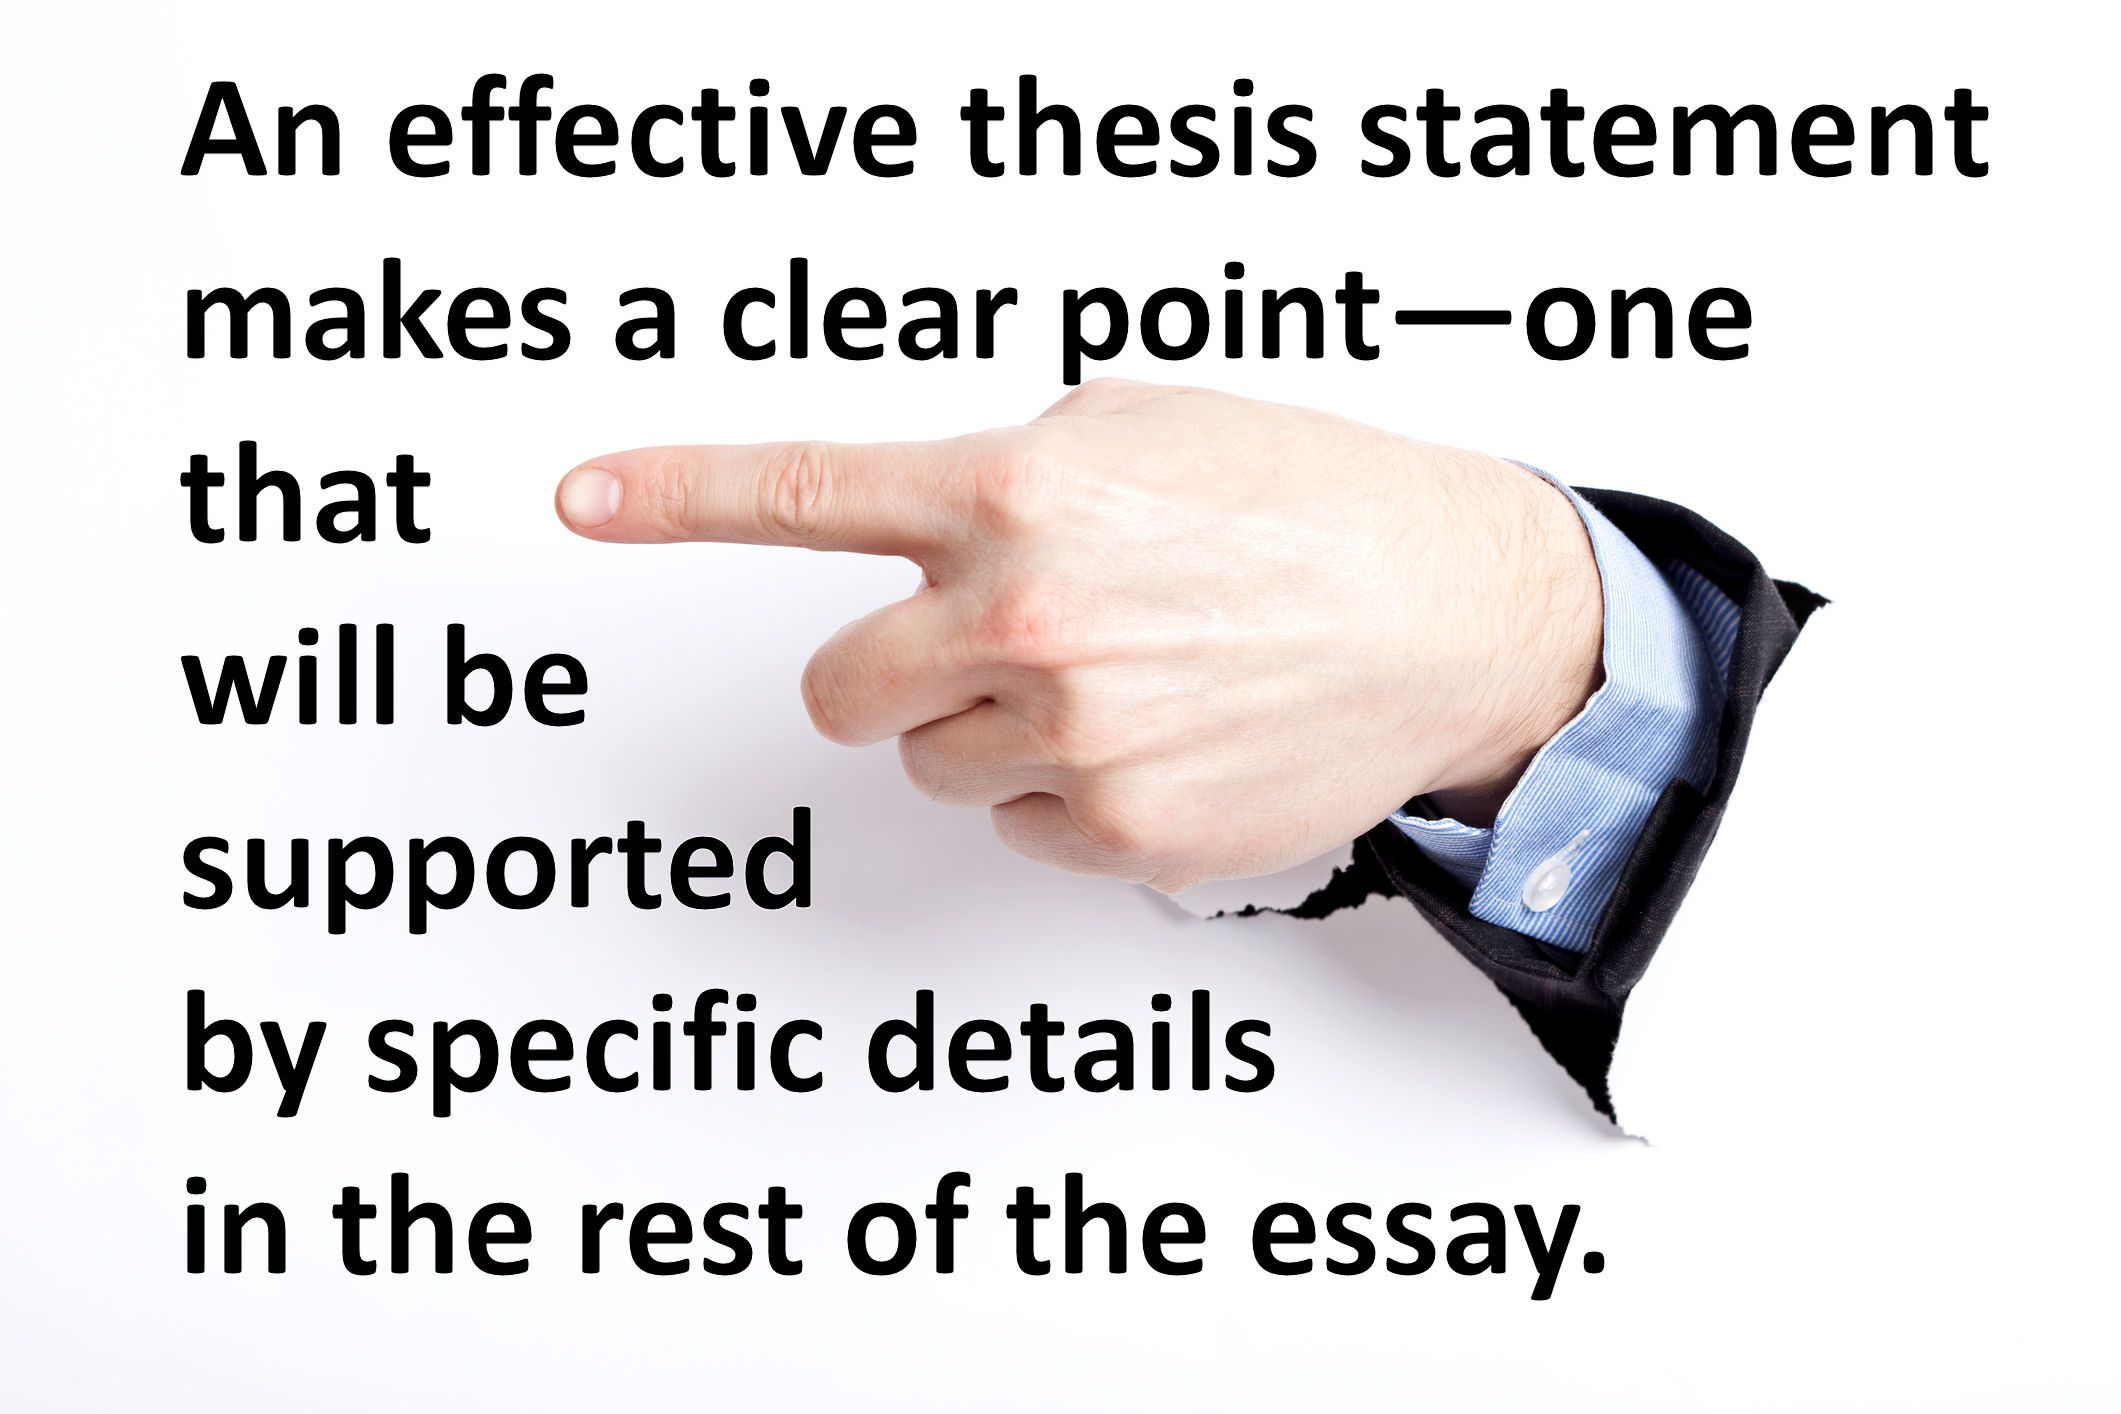 practice exercises writing thesis statement For each of the following thesis statements, identify the topic,  writing an essay can be a fairly easy  write one possible thesis statement for each topic.